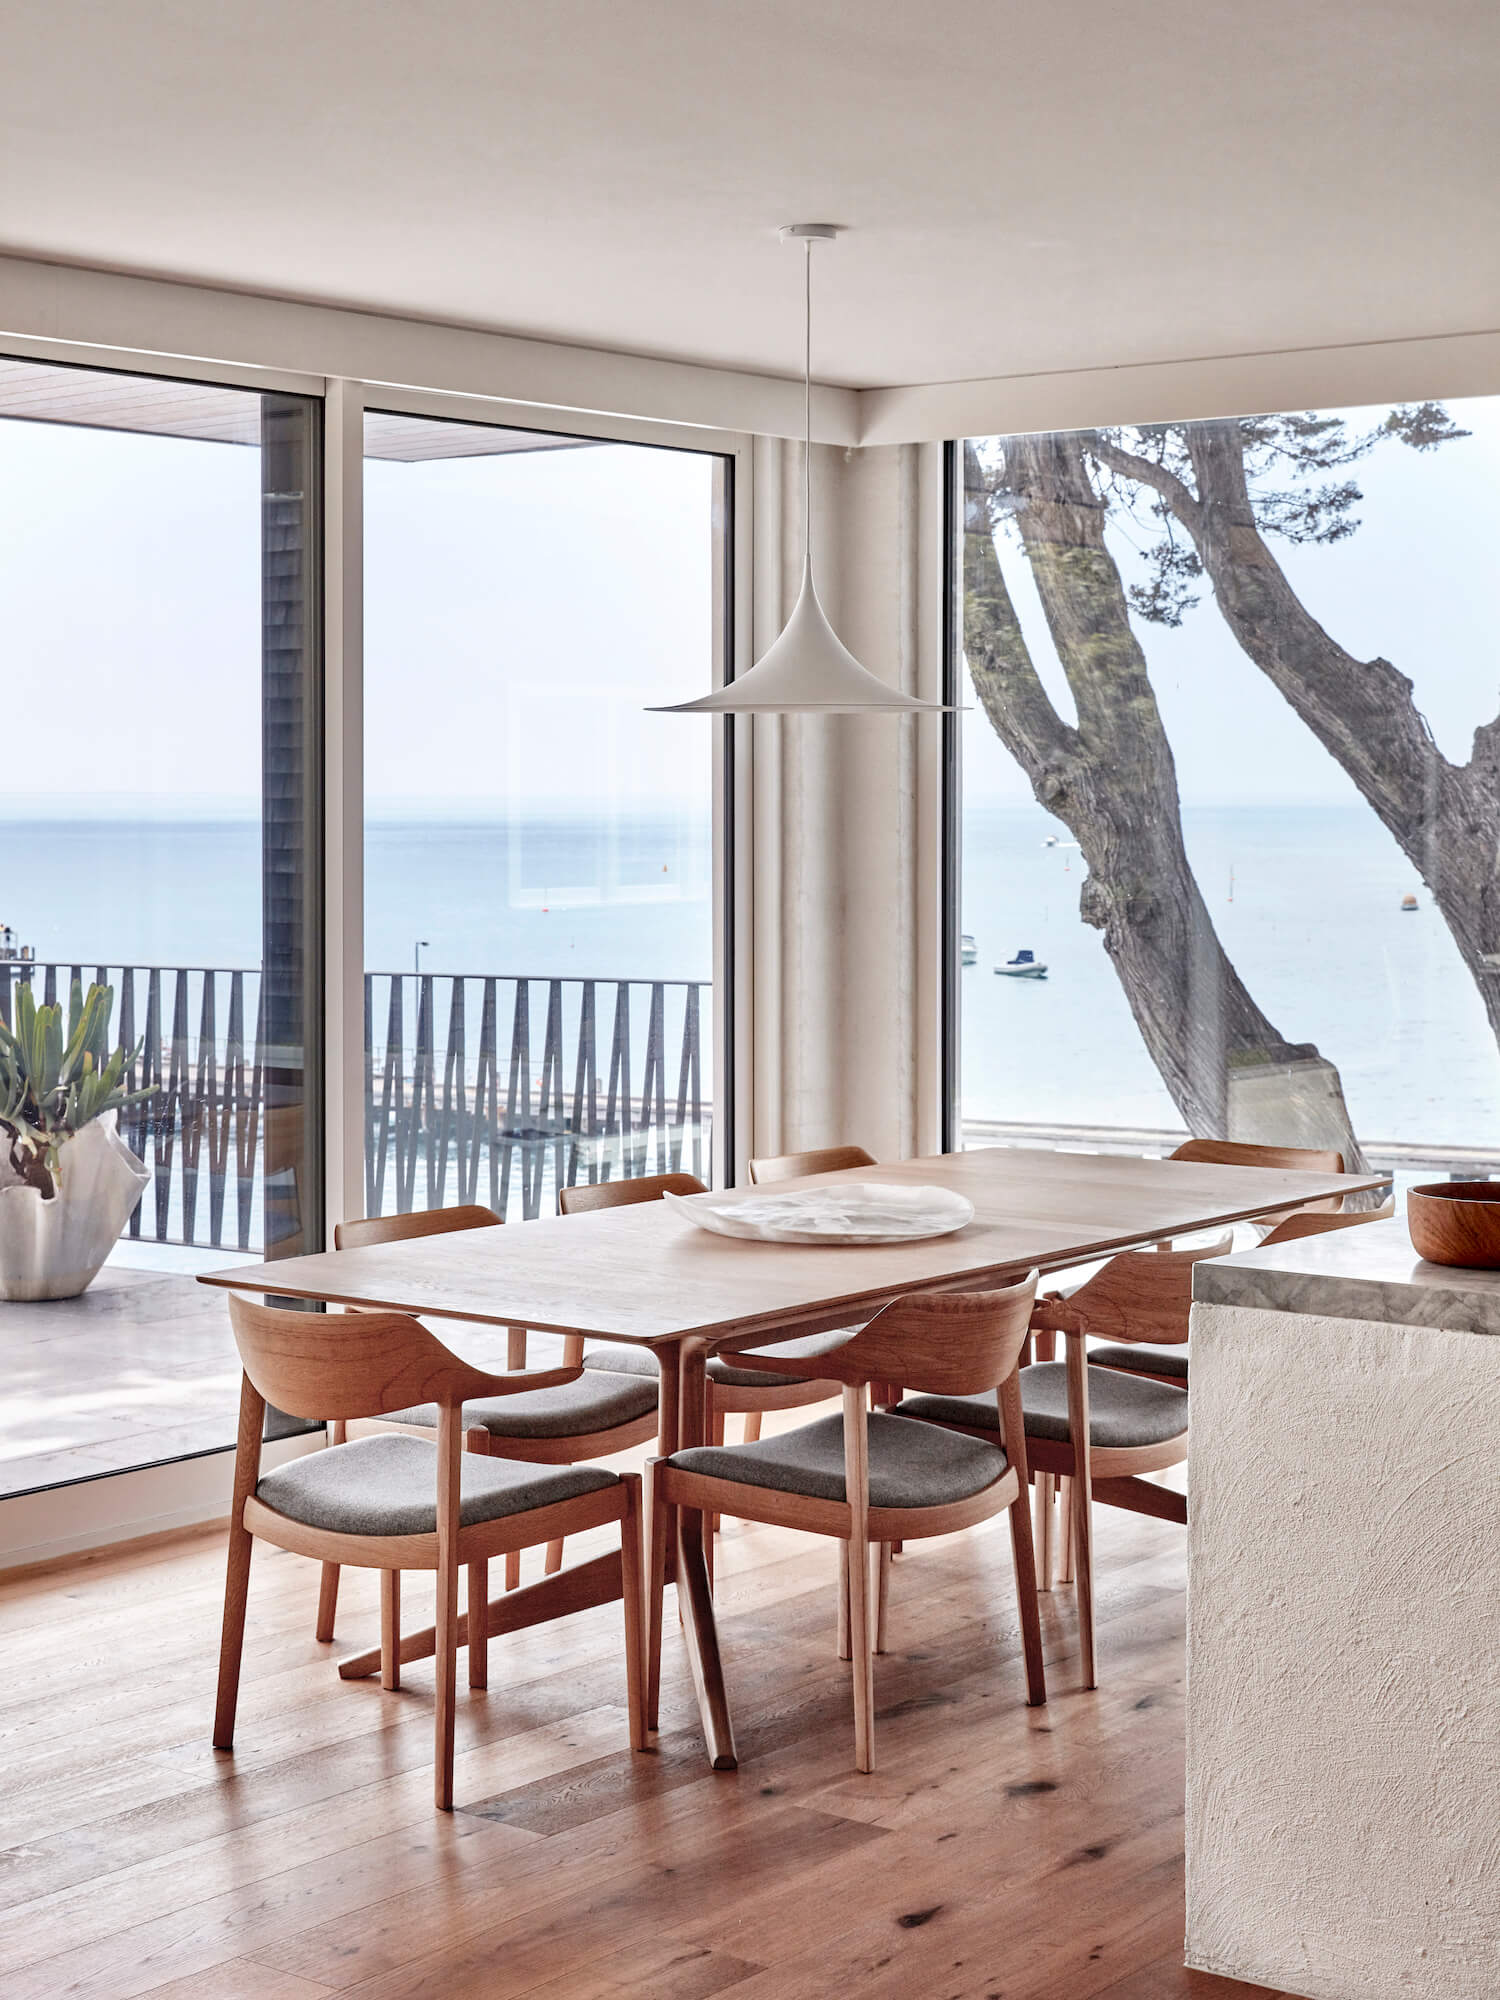 est living studio esteta portsea beach house 9